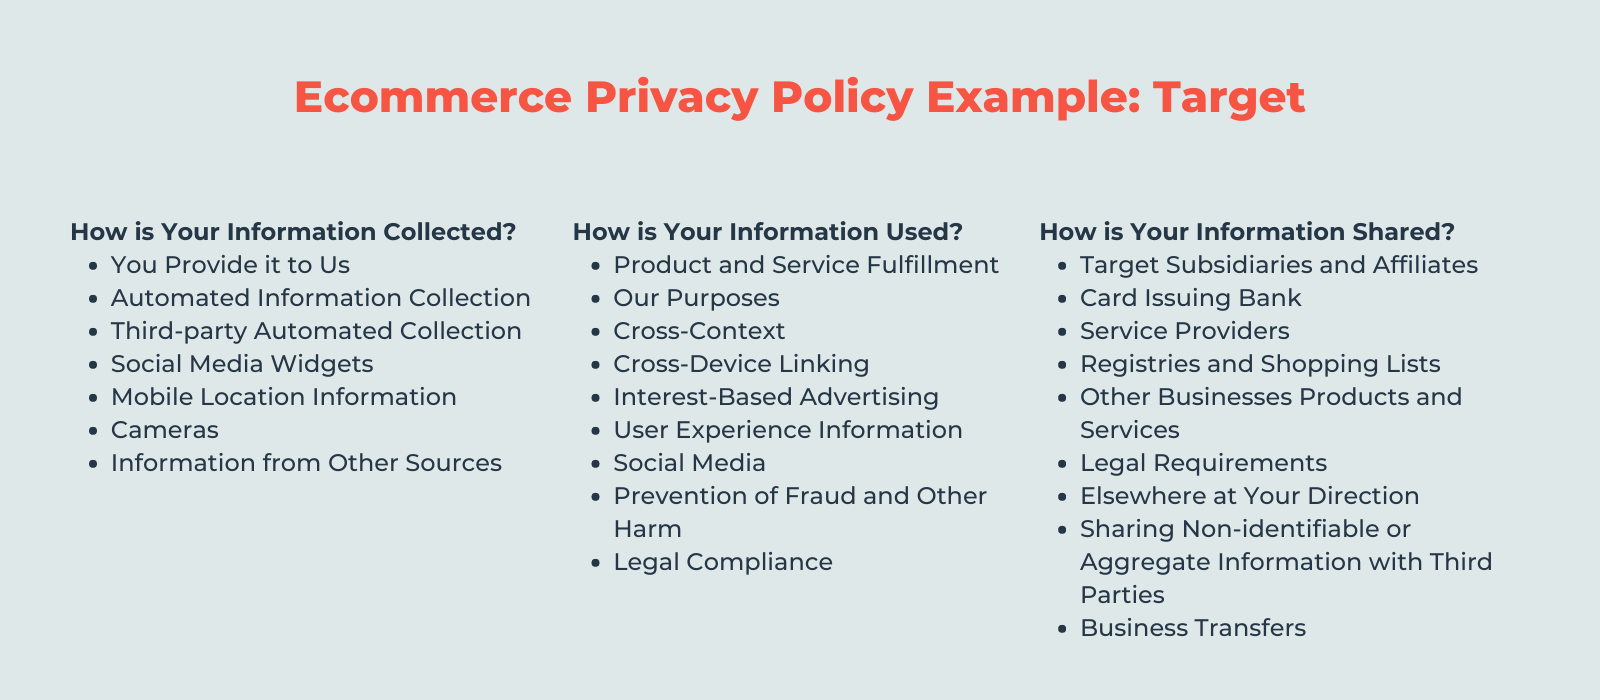 ecommerce privacy policy example: target